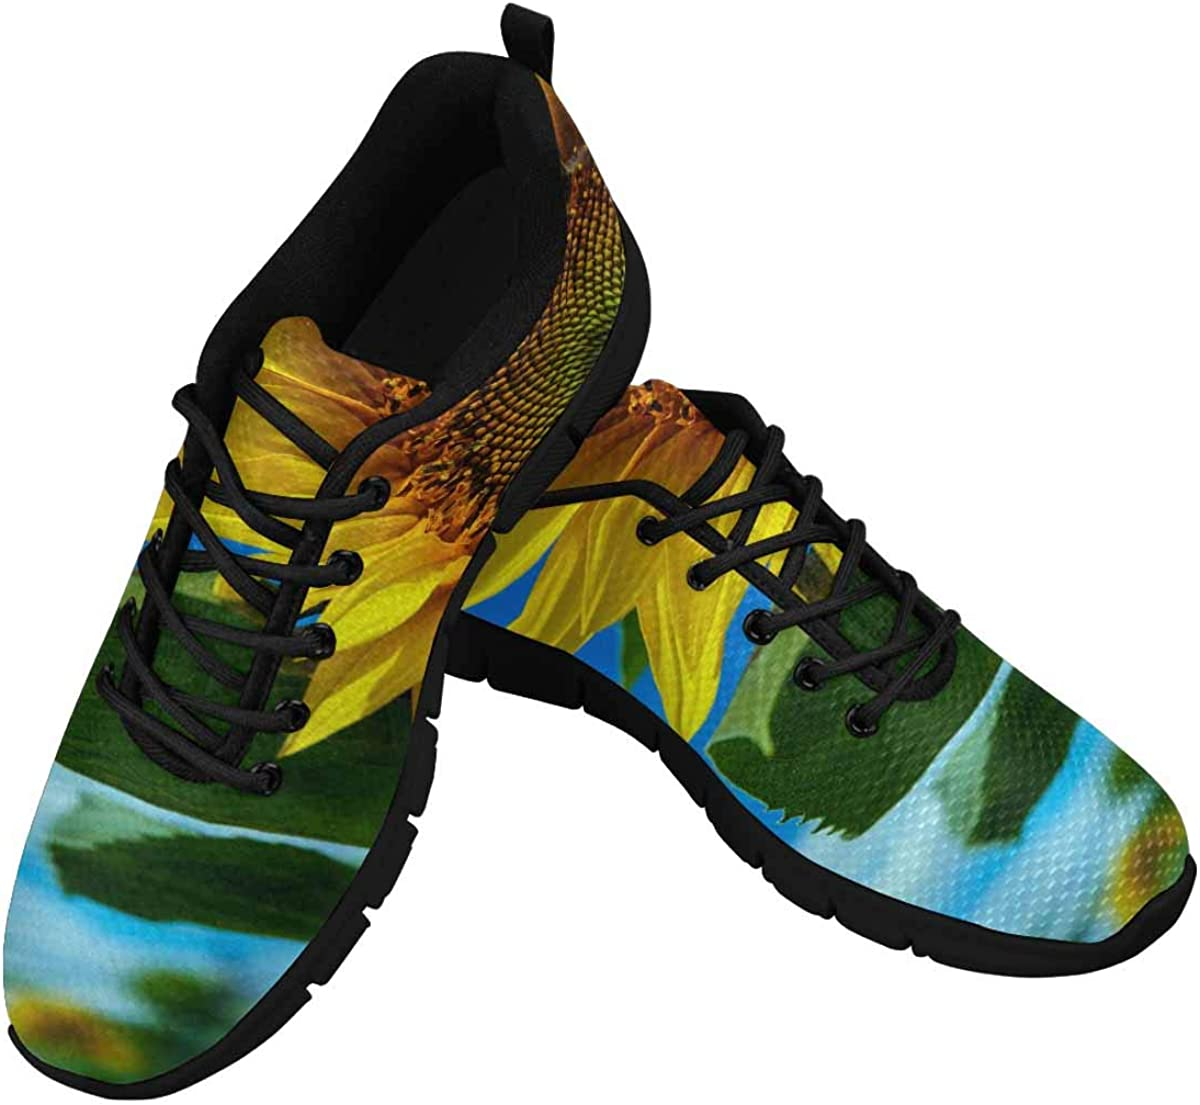 INTERESTPRINT Sunflower Yellow Women's Athletic Mesh Breathable Casual Sneakers Fashion Tennis Shoes